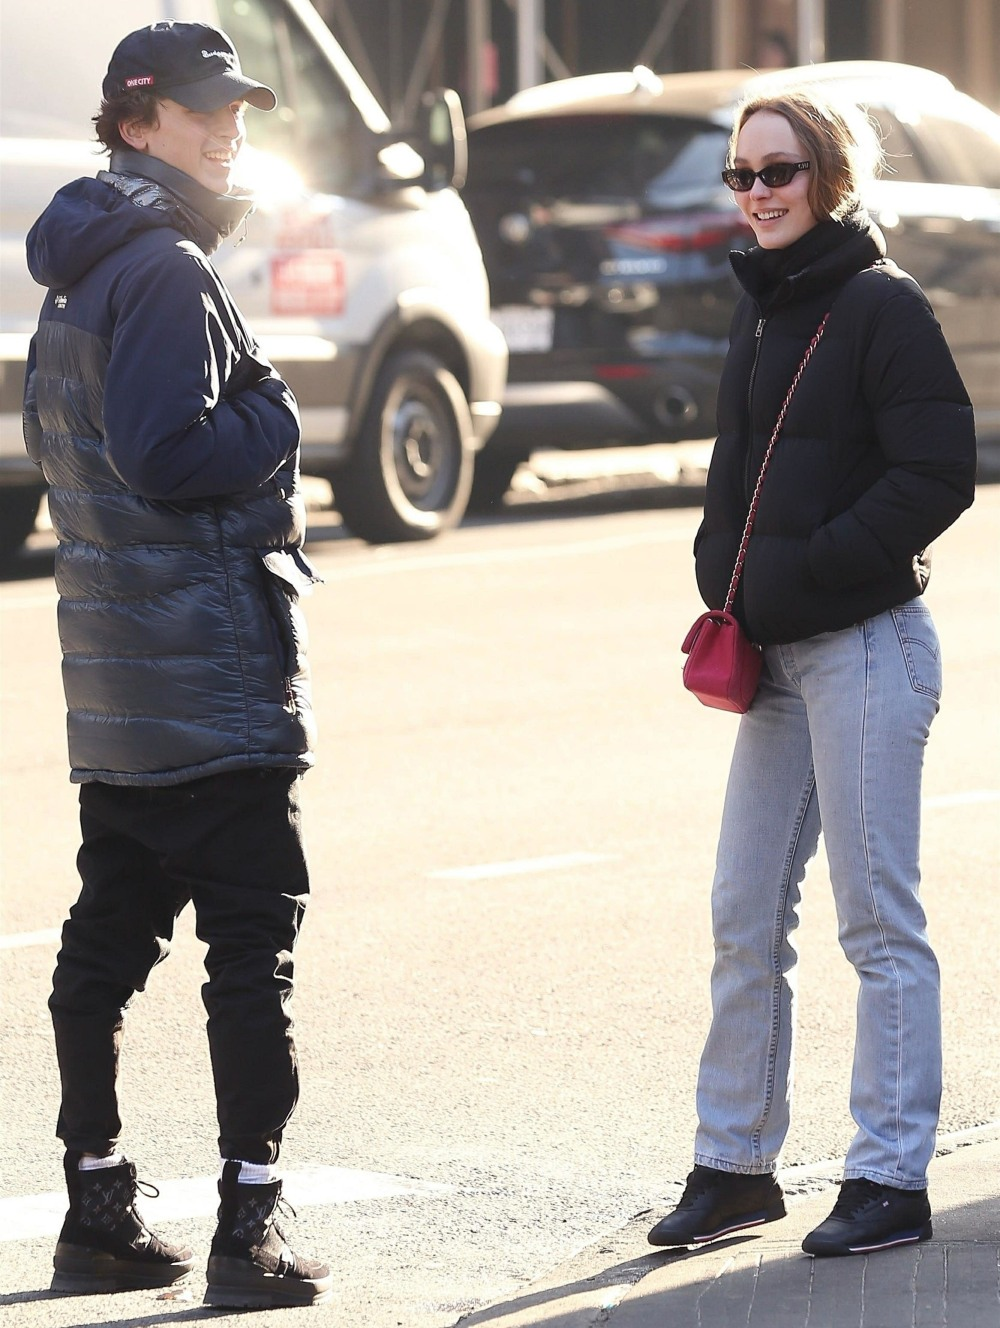 Lily-Rose Depp and Timothee Chalamet grab lunch together in NYC